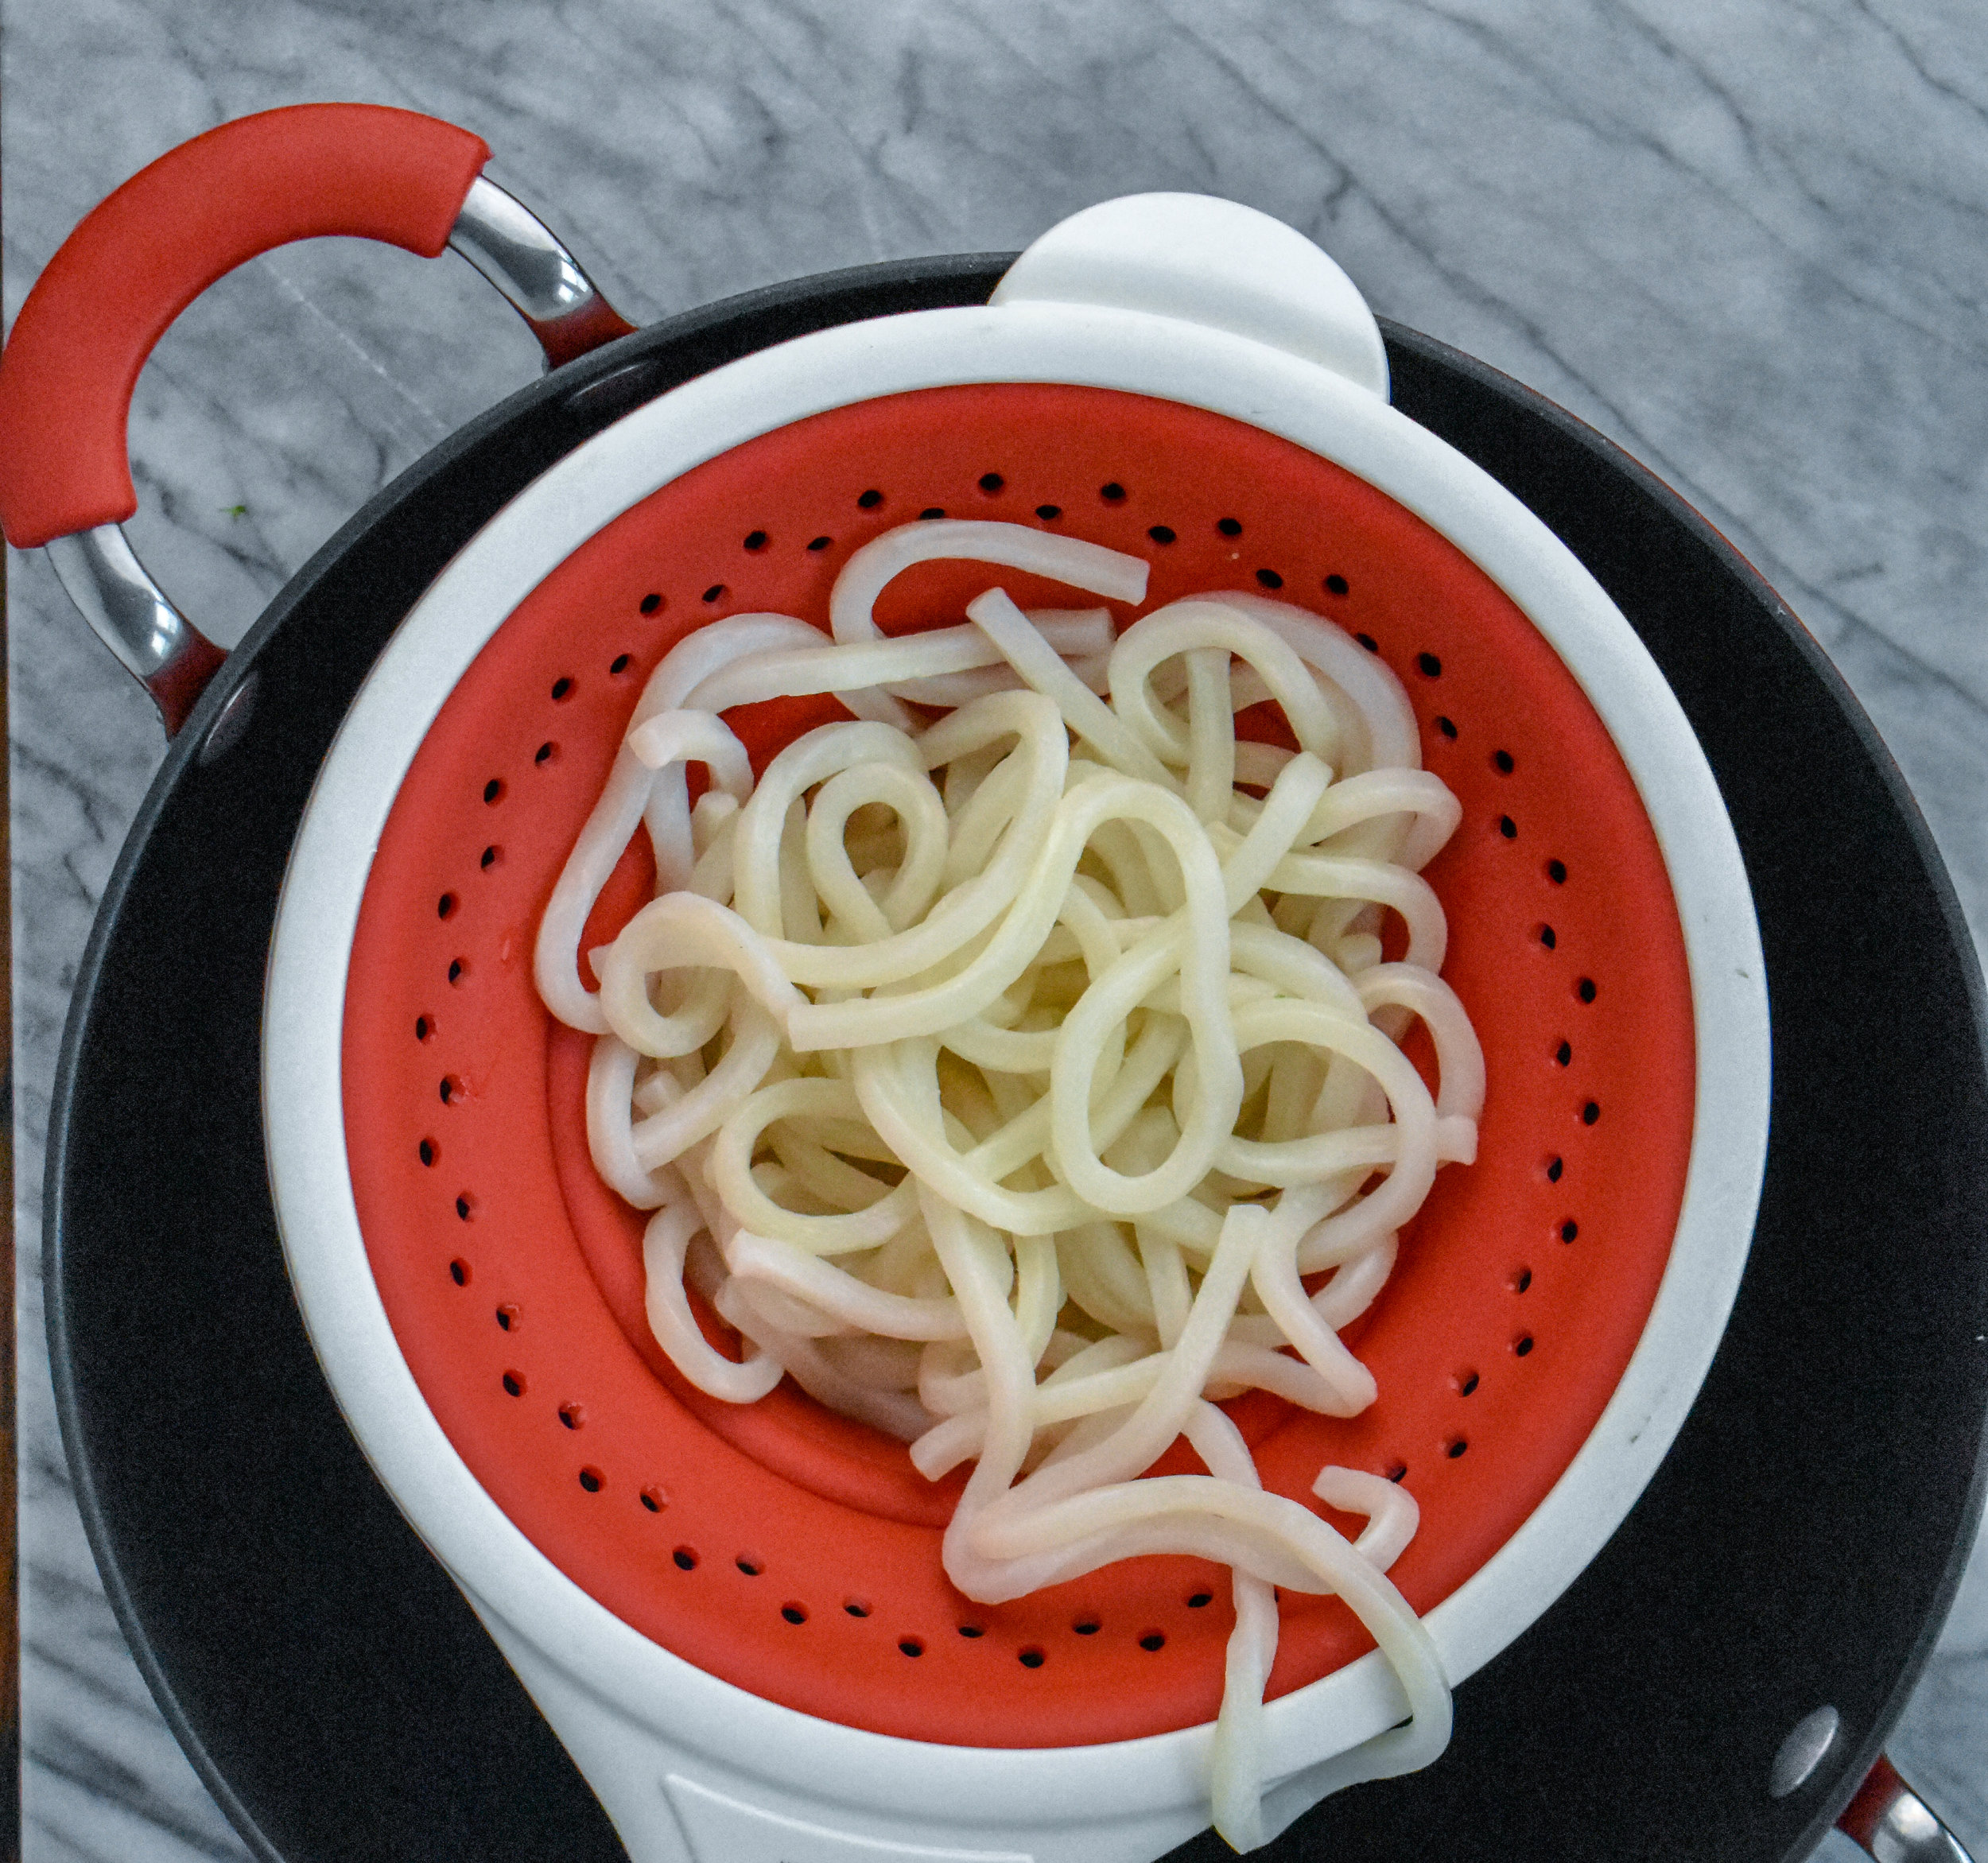 2. Once water is boiling, sdd frozen udon noodles to the boiling water. Turn off heat and let it sit for 2-3 minutes. Strain and set aside.